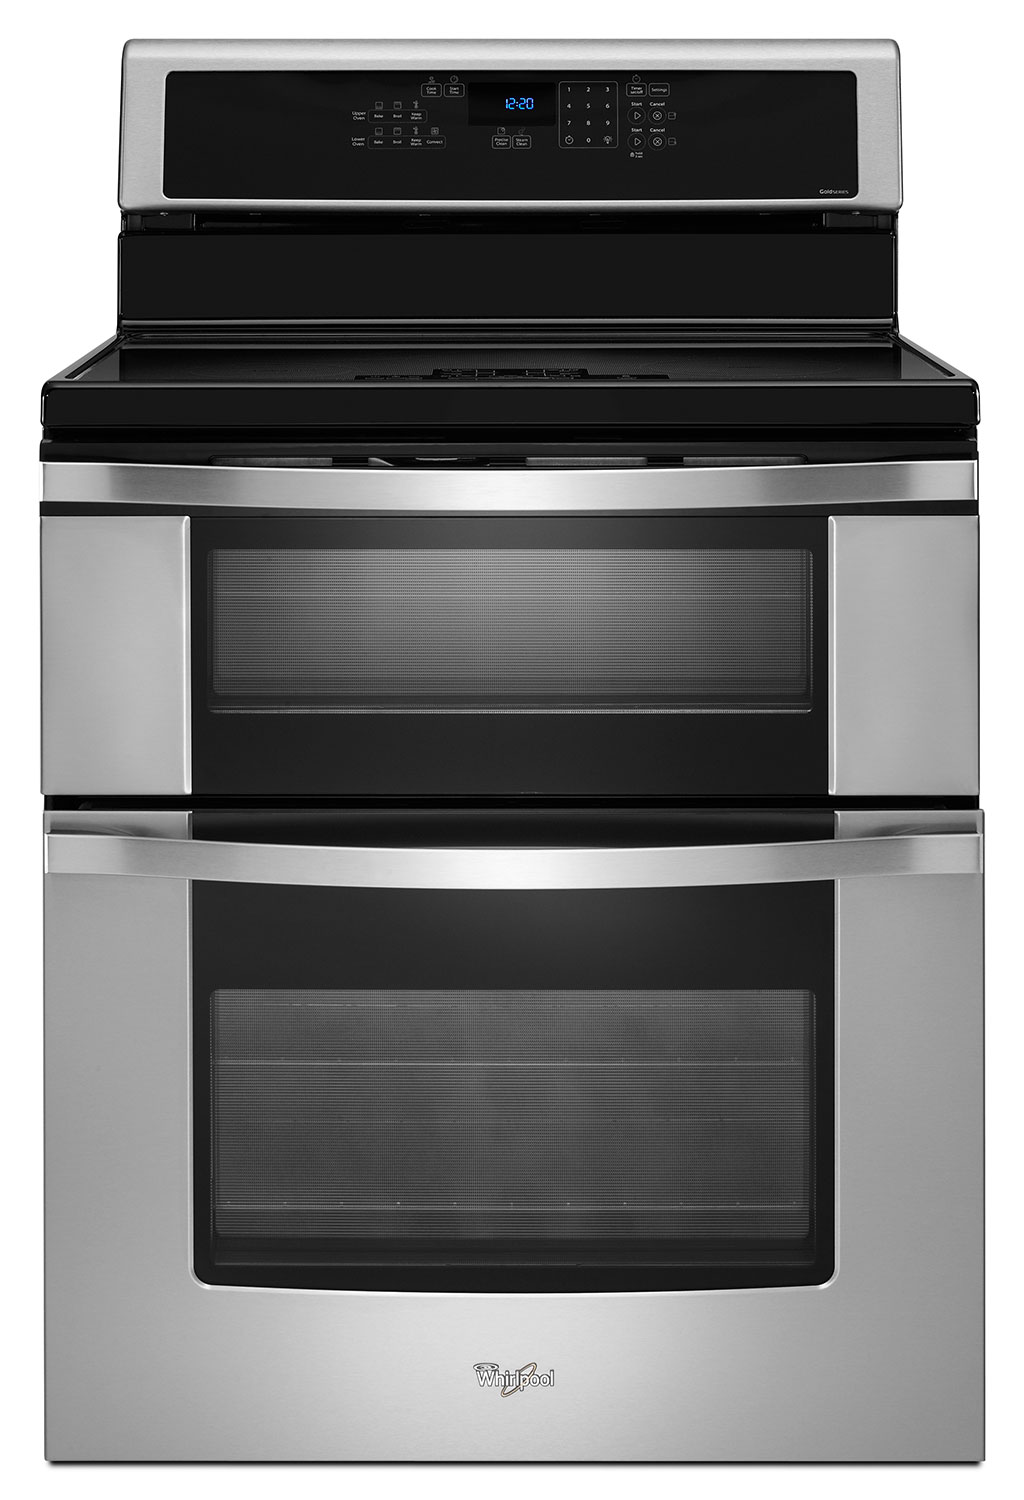 Whirlpool Stainless Steel Freestanding Electric Double Range (6.7 Cu. Ft.) - YWGI925C0BS